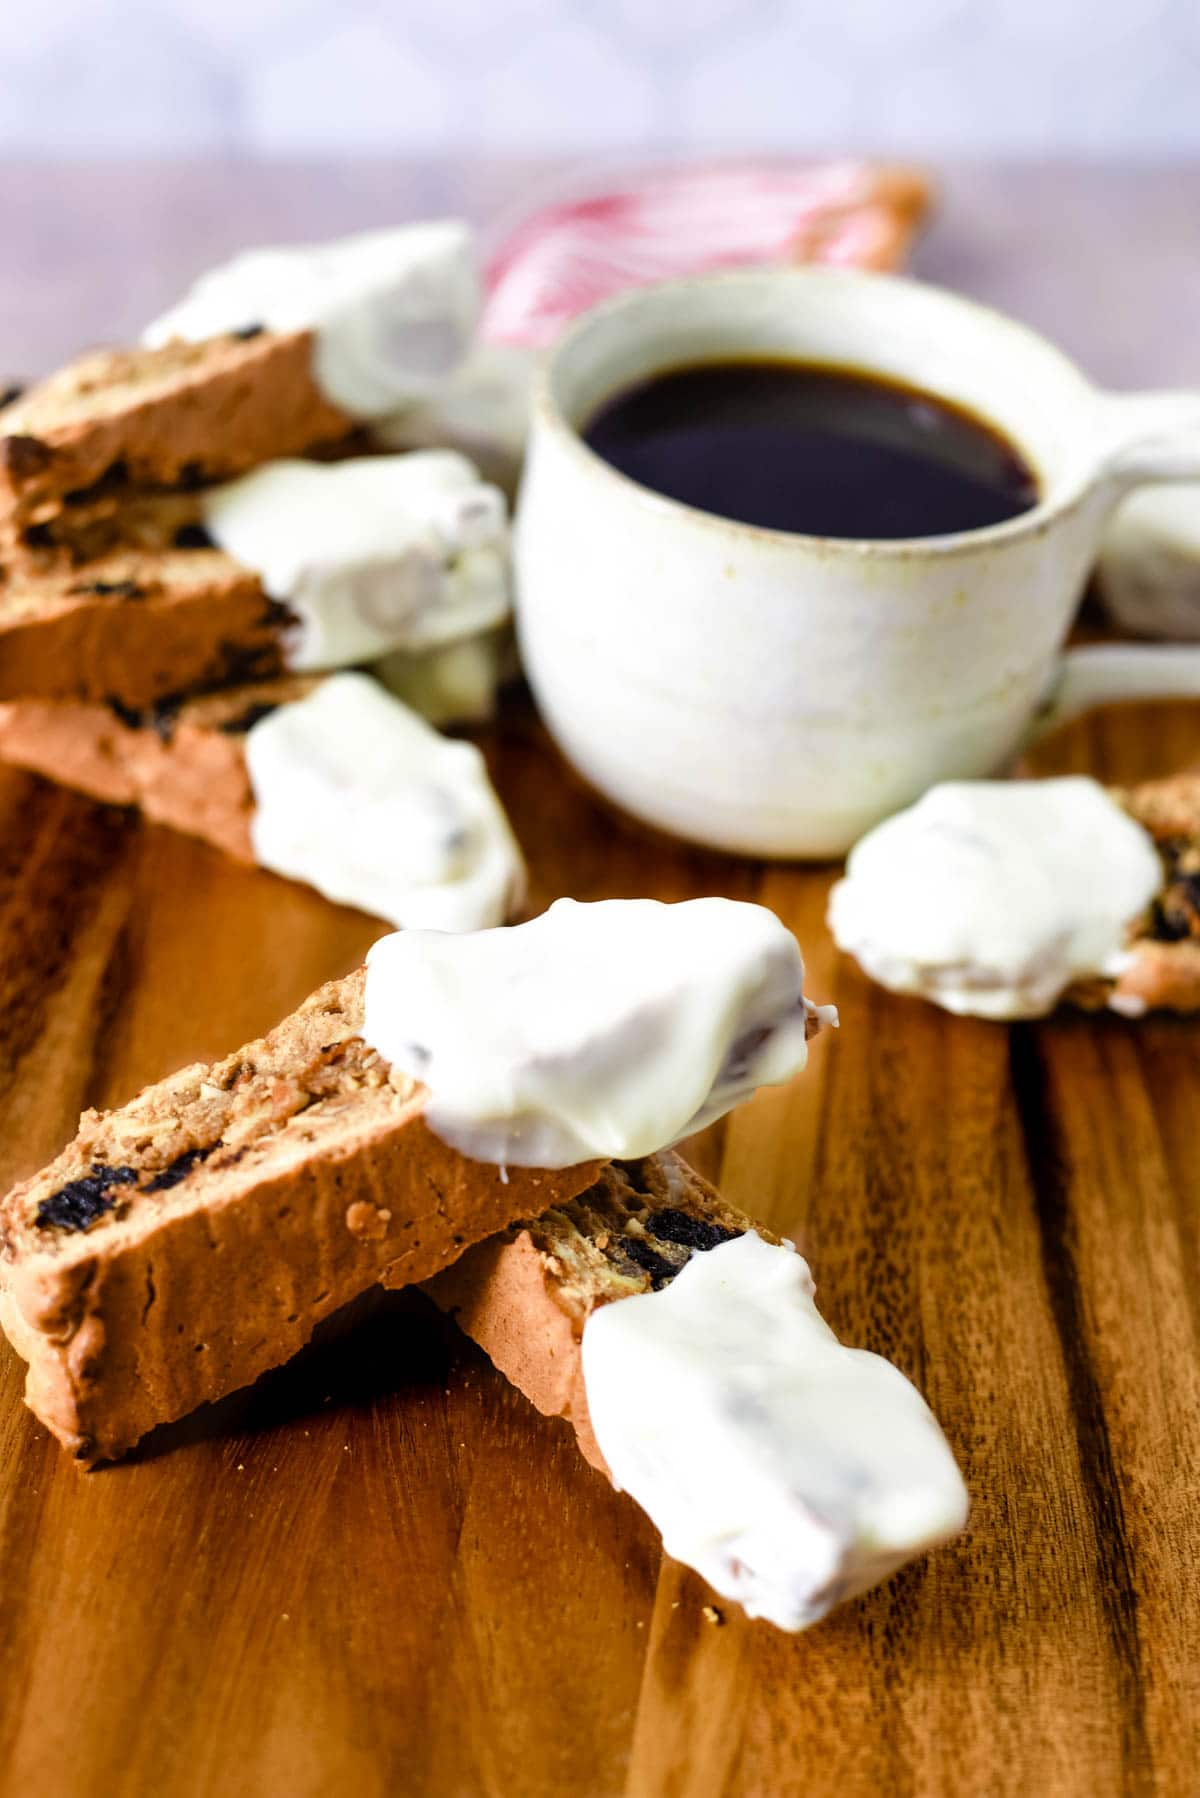 biscotti with white chocolate next to coffee cup